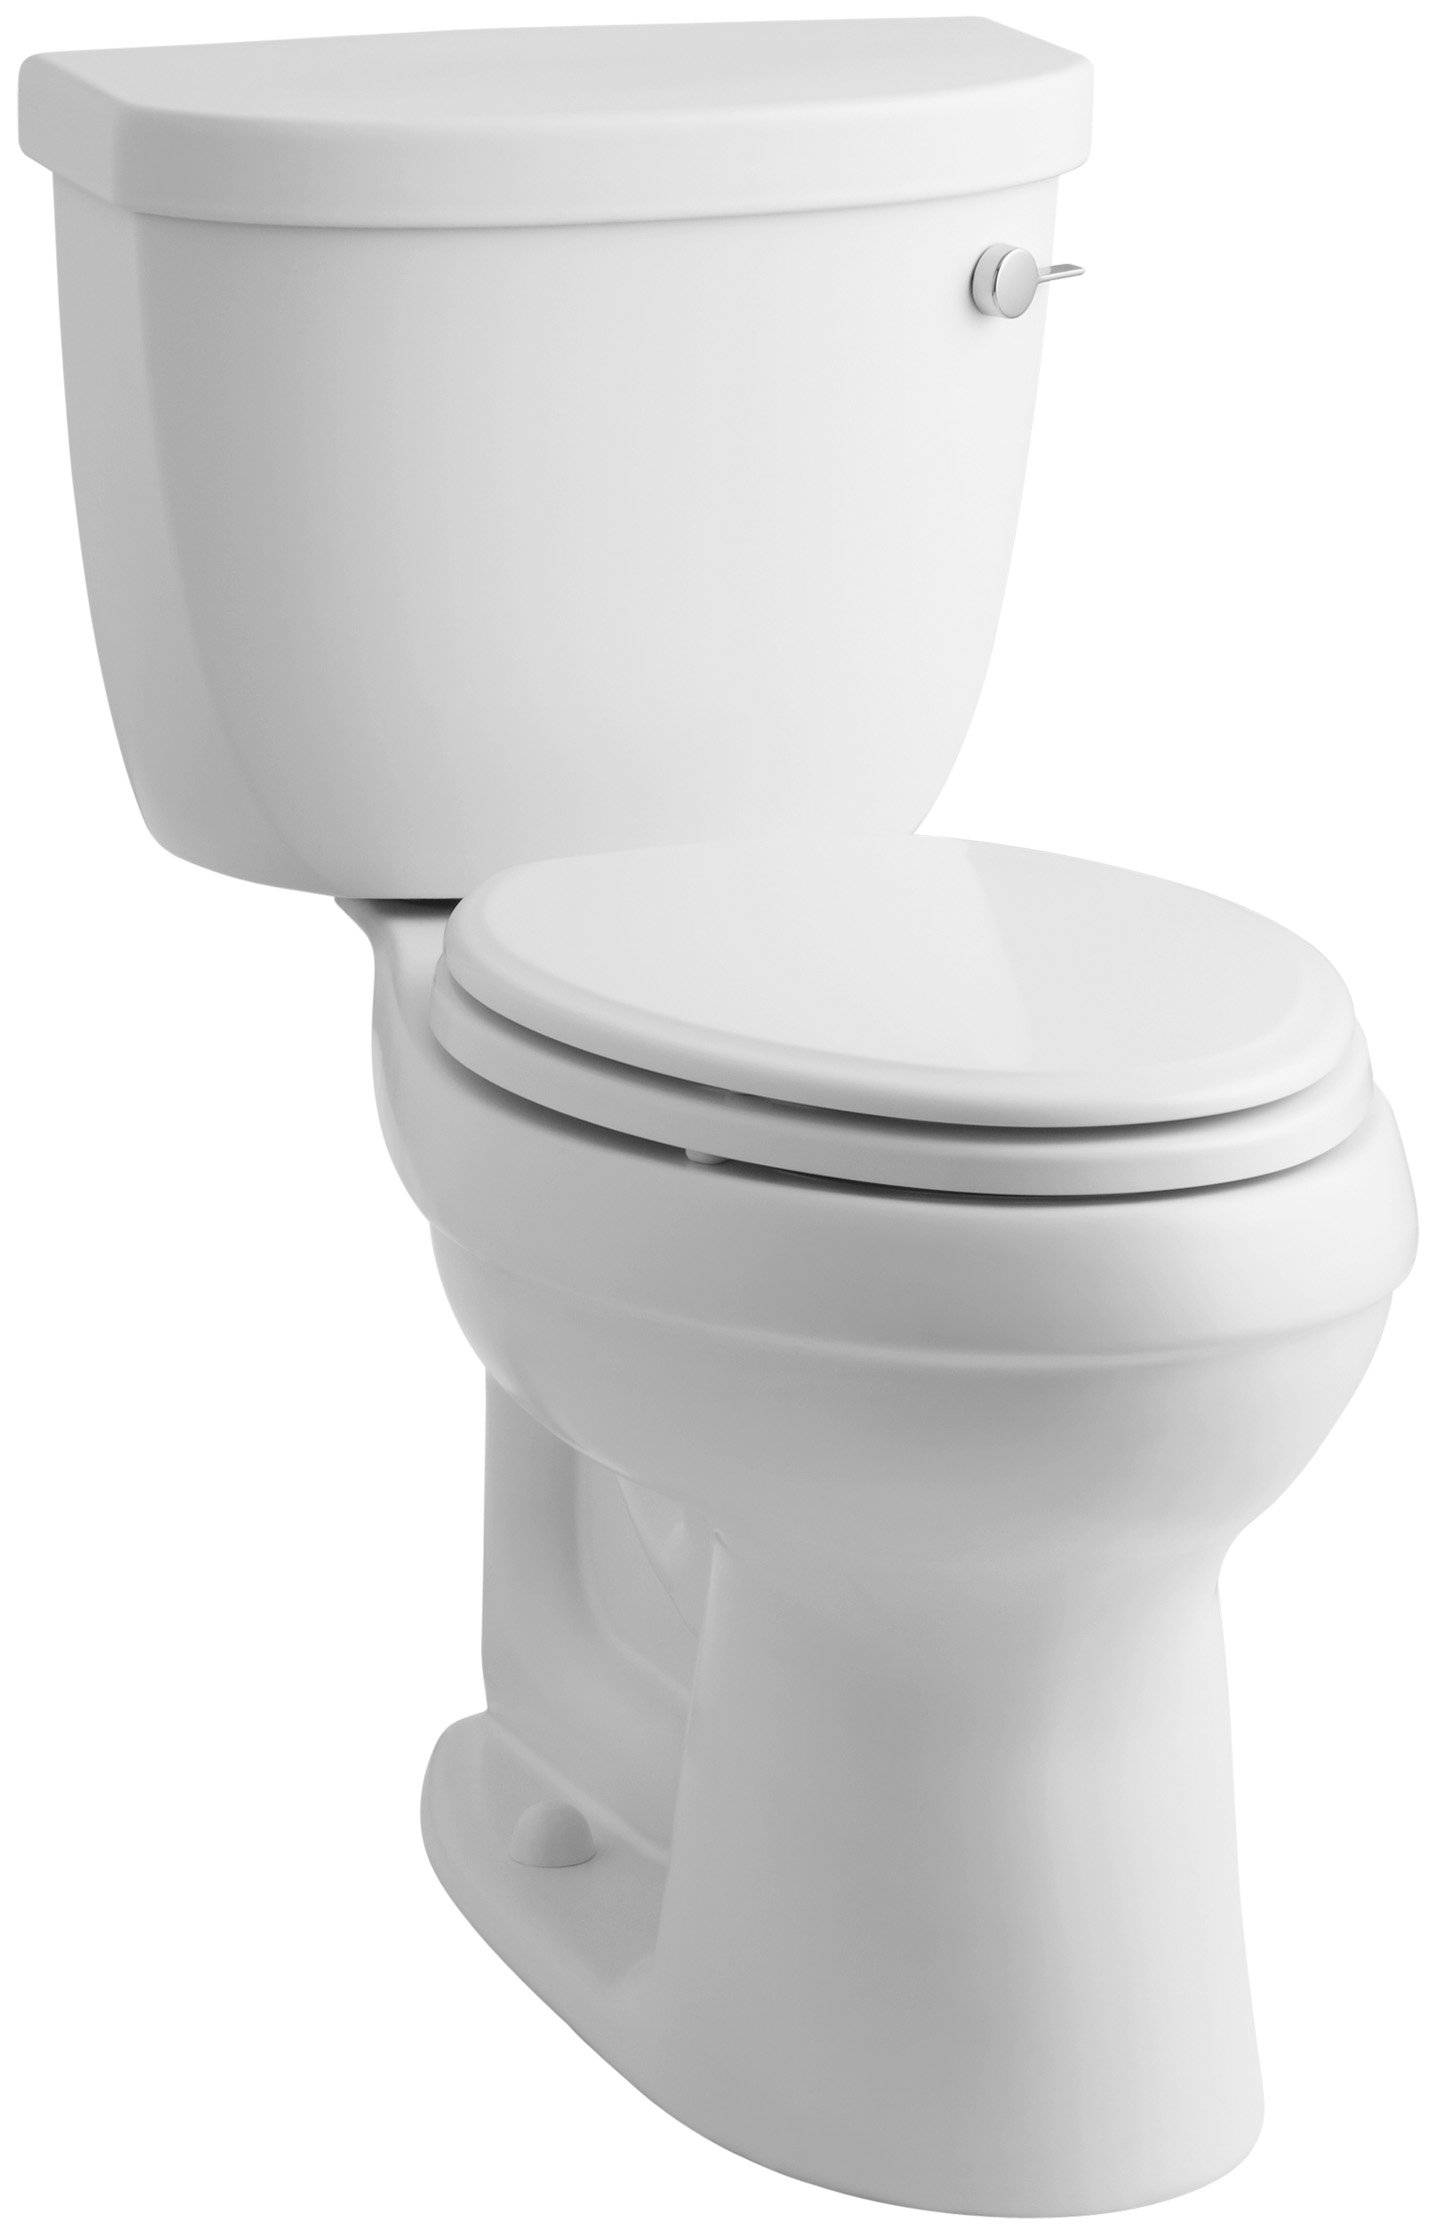 KOHLER K-3609-RA-0 Cimarron Comfort Height 1.28 Elongated Toilet with Class Five Technology and Right-Hand Trip Lever, Less Seat, White by Kohler